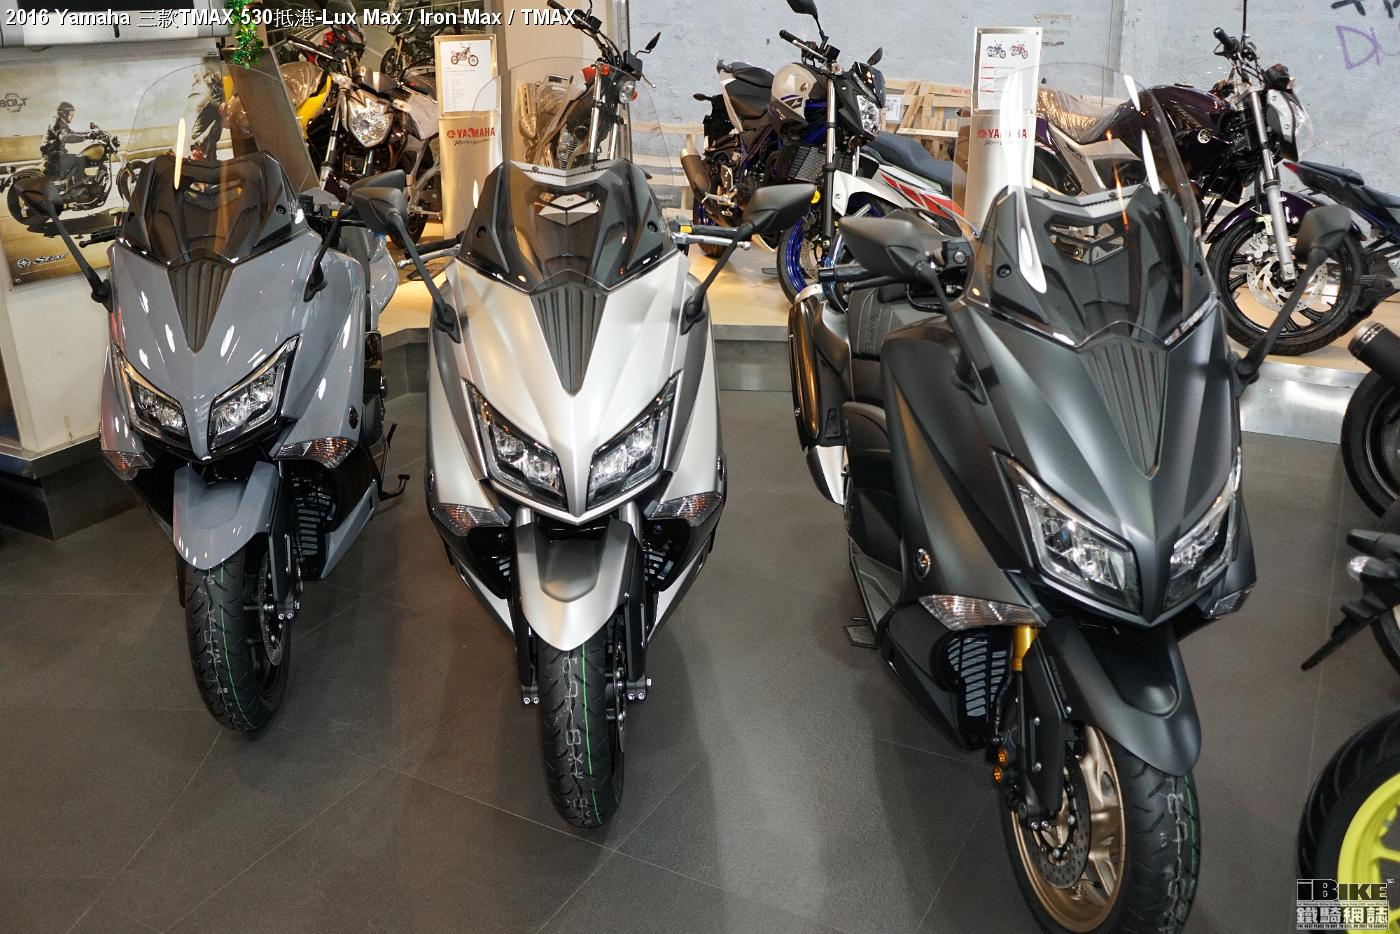 2016 yamaha tmax 530 lux max iron max tmax ibike. Black Bedroom Furniture Sets. Home Design Ideas